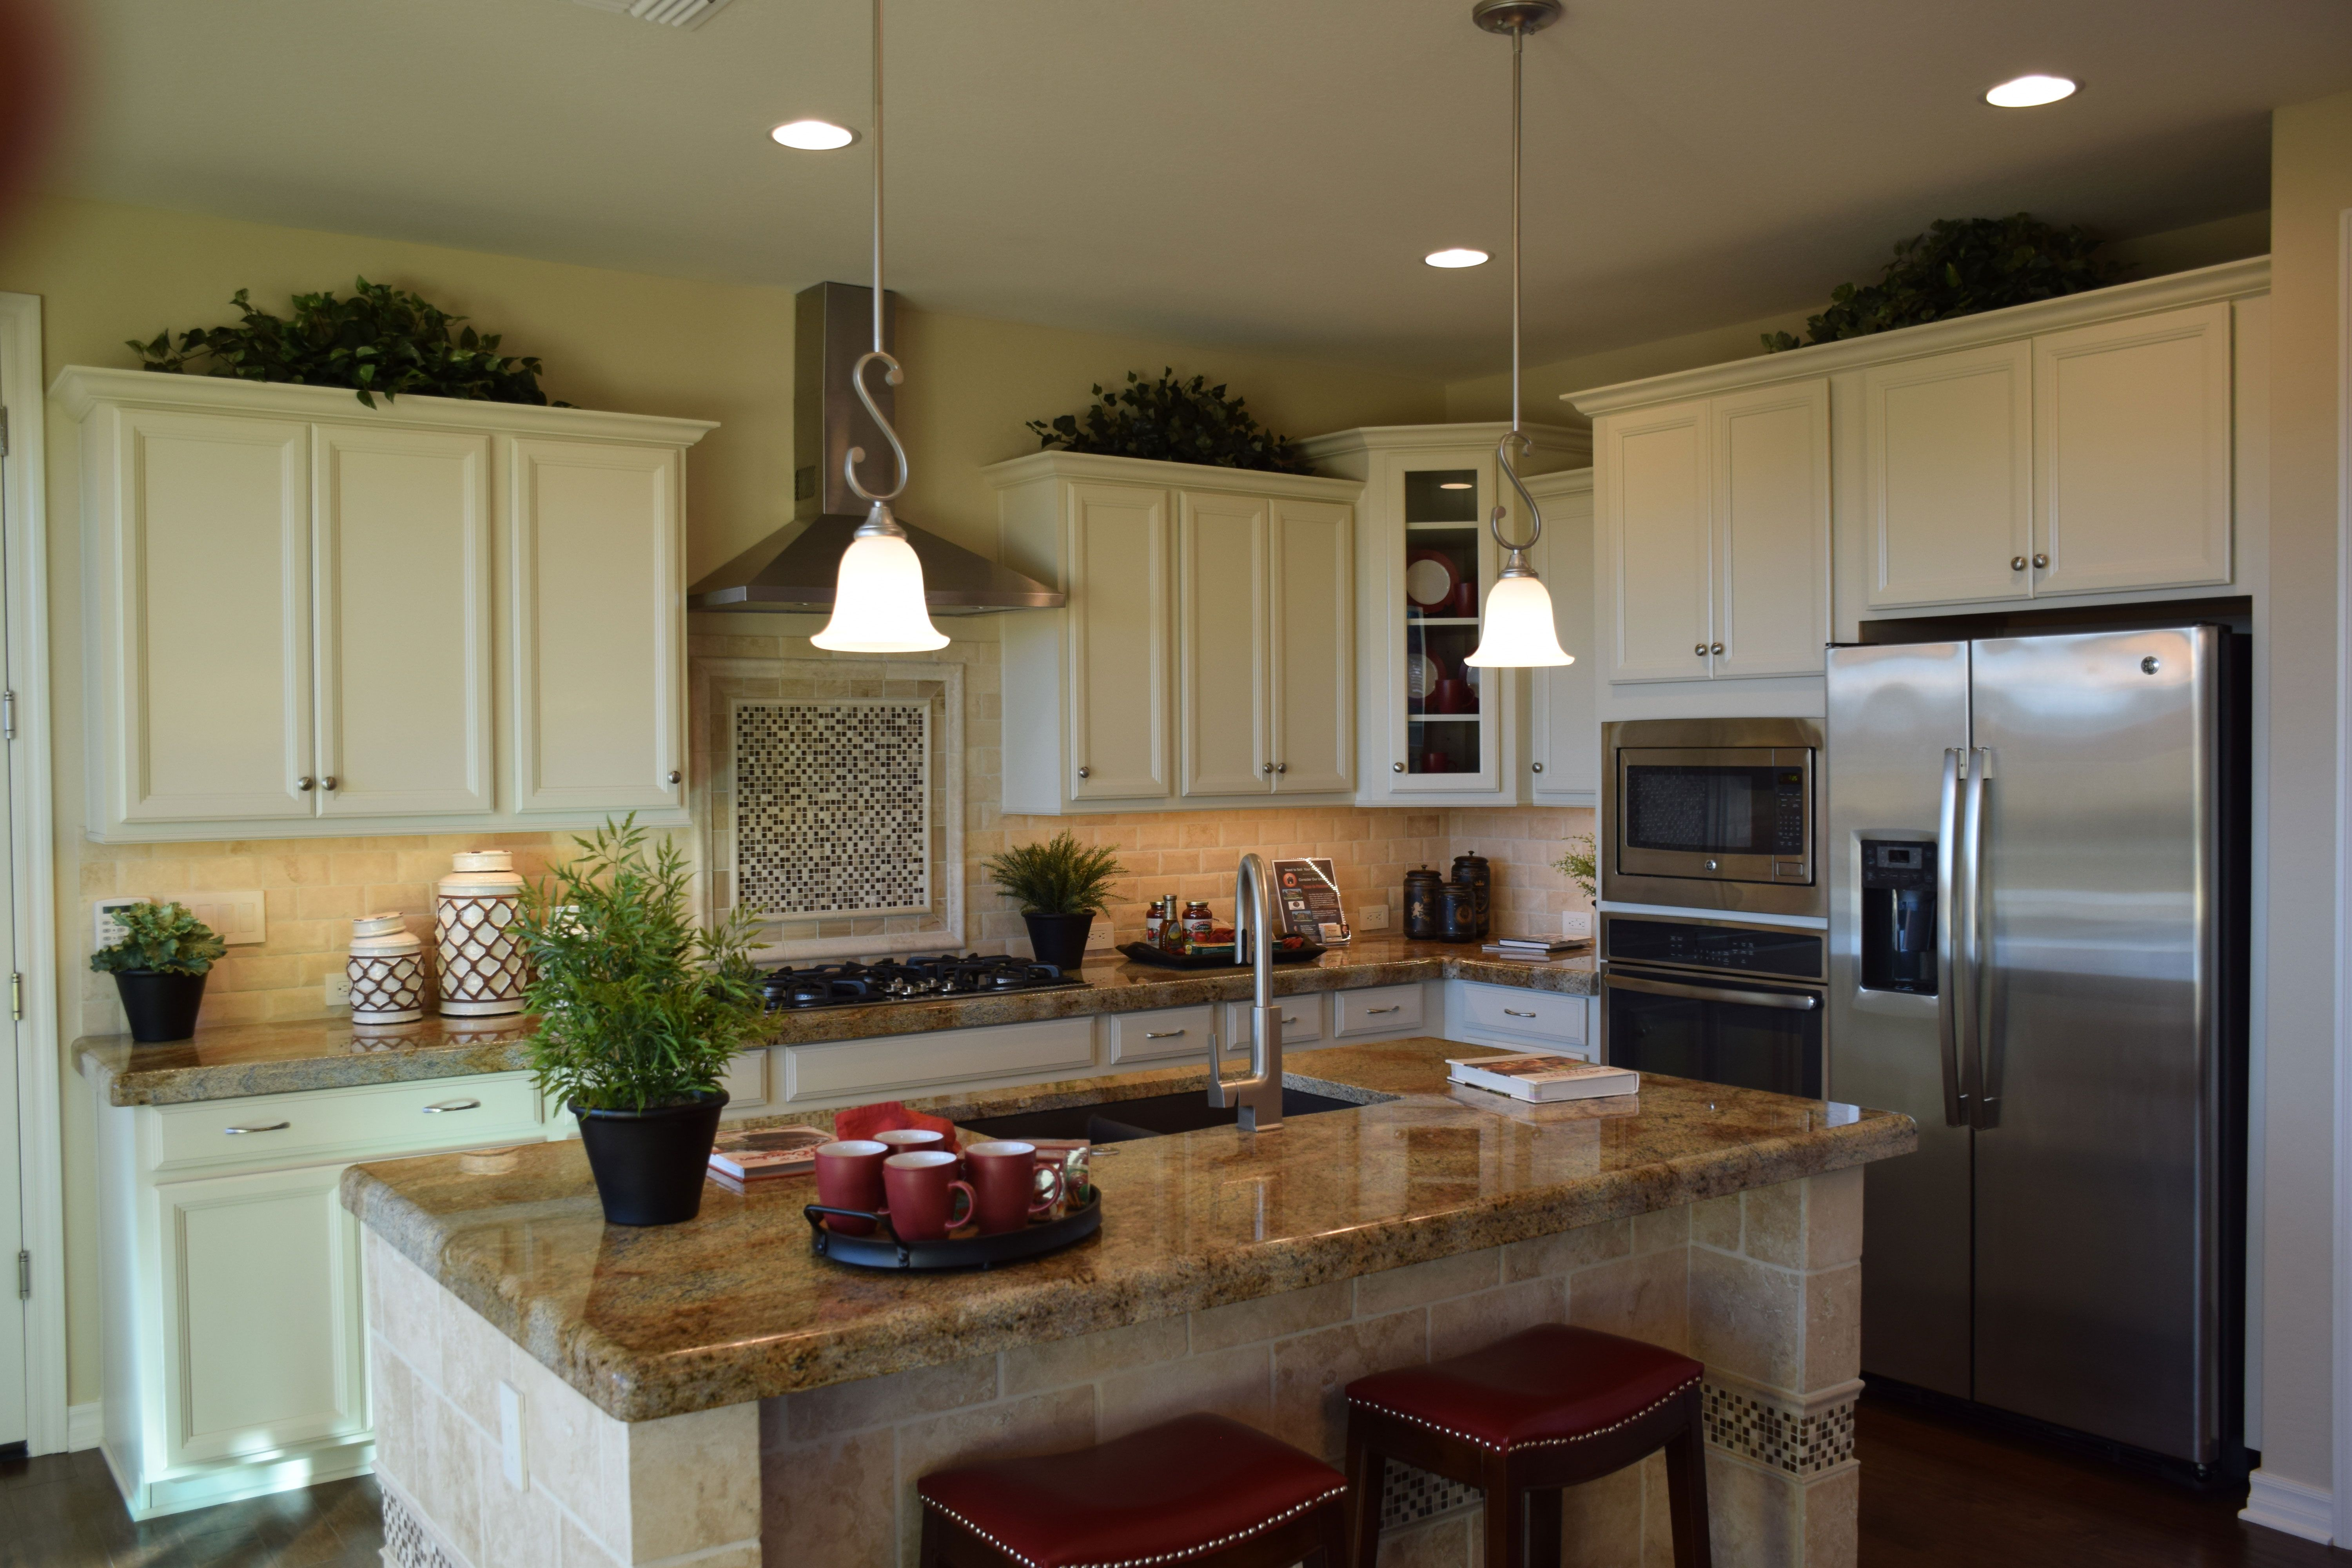 White Cabinets Make A Bright Kitchen Bright Kitchens Kitchen